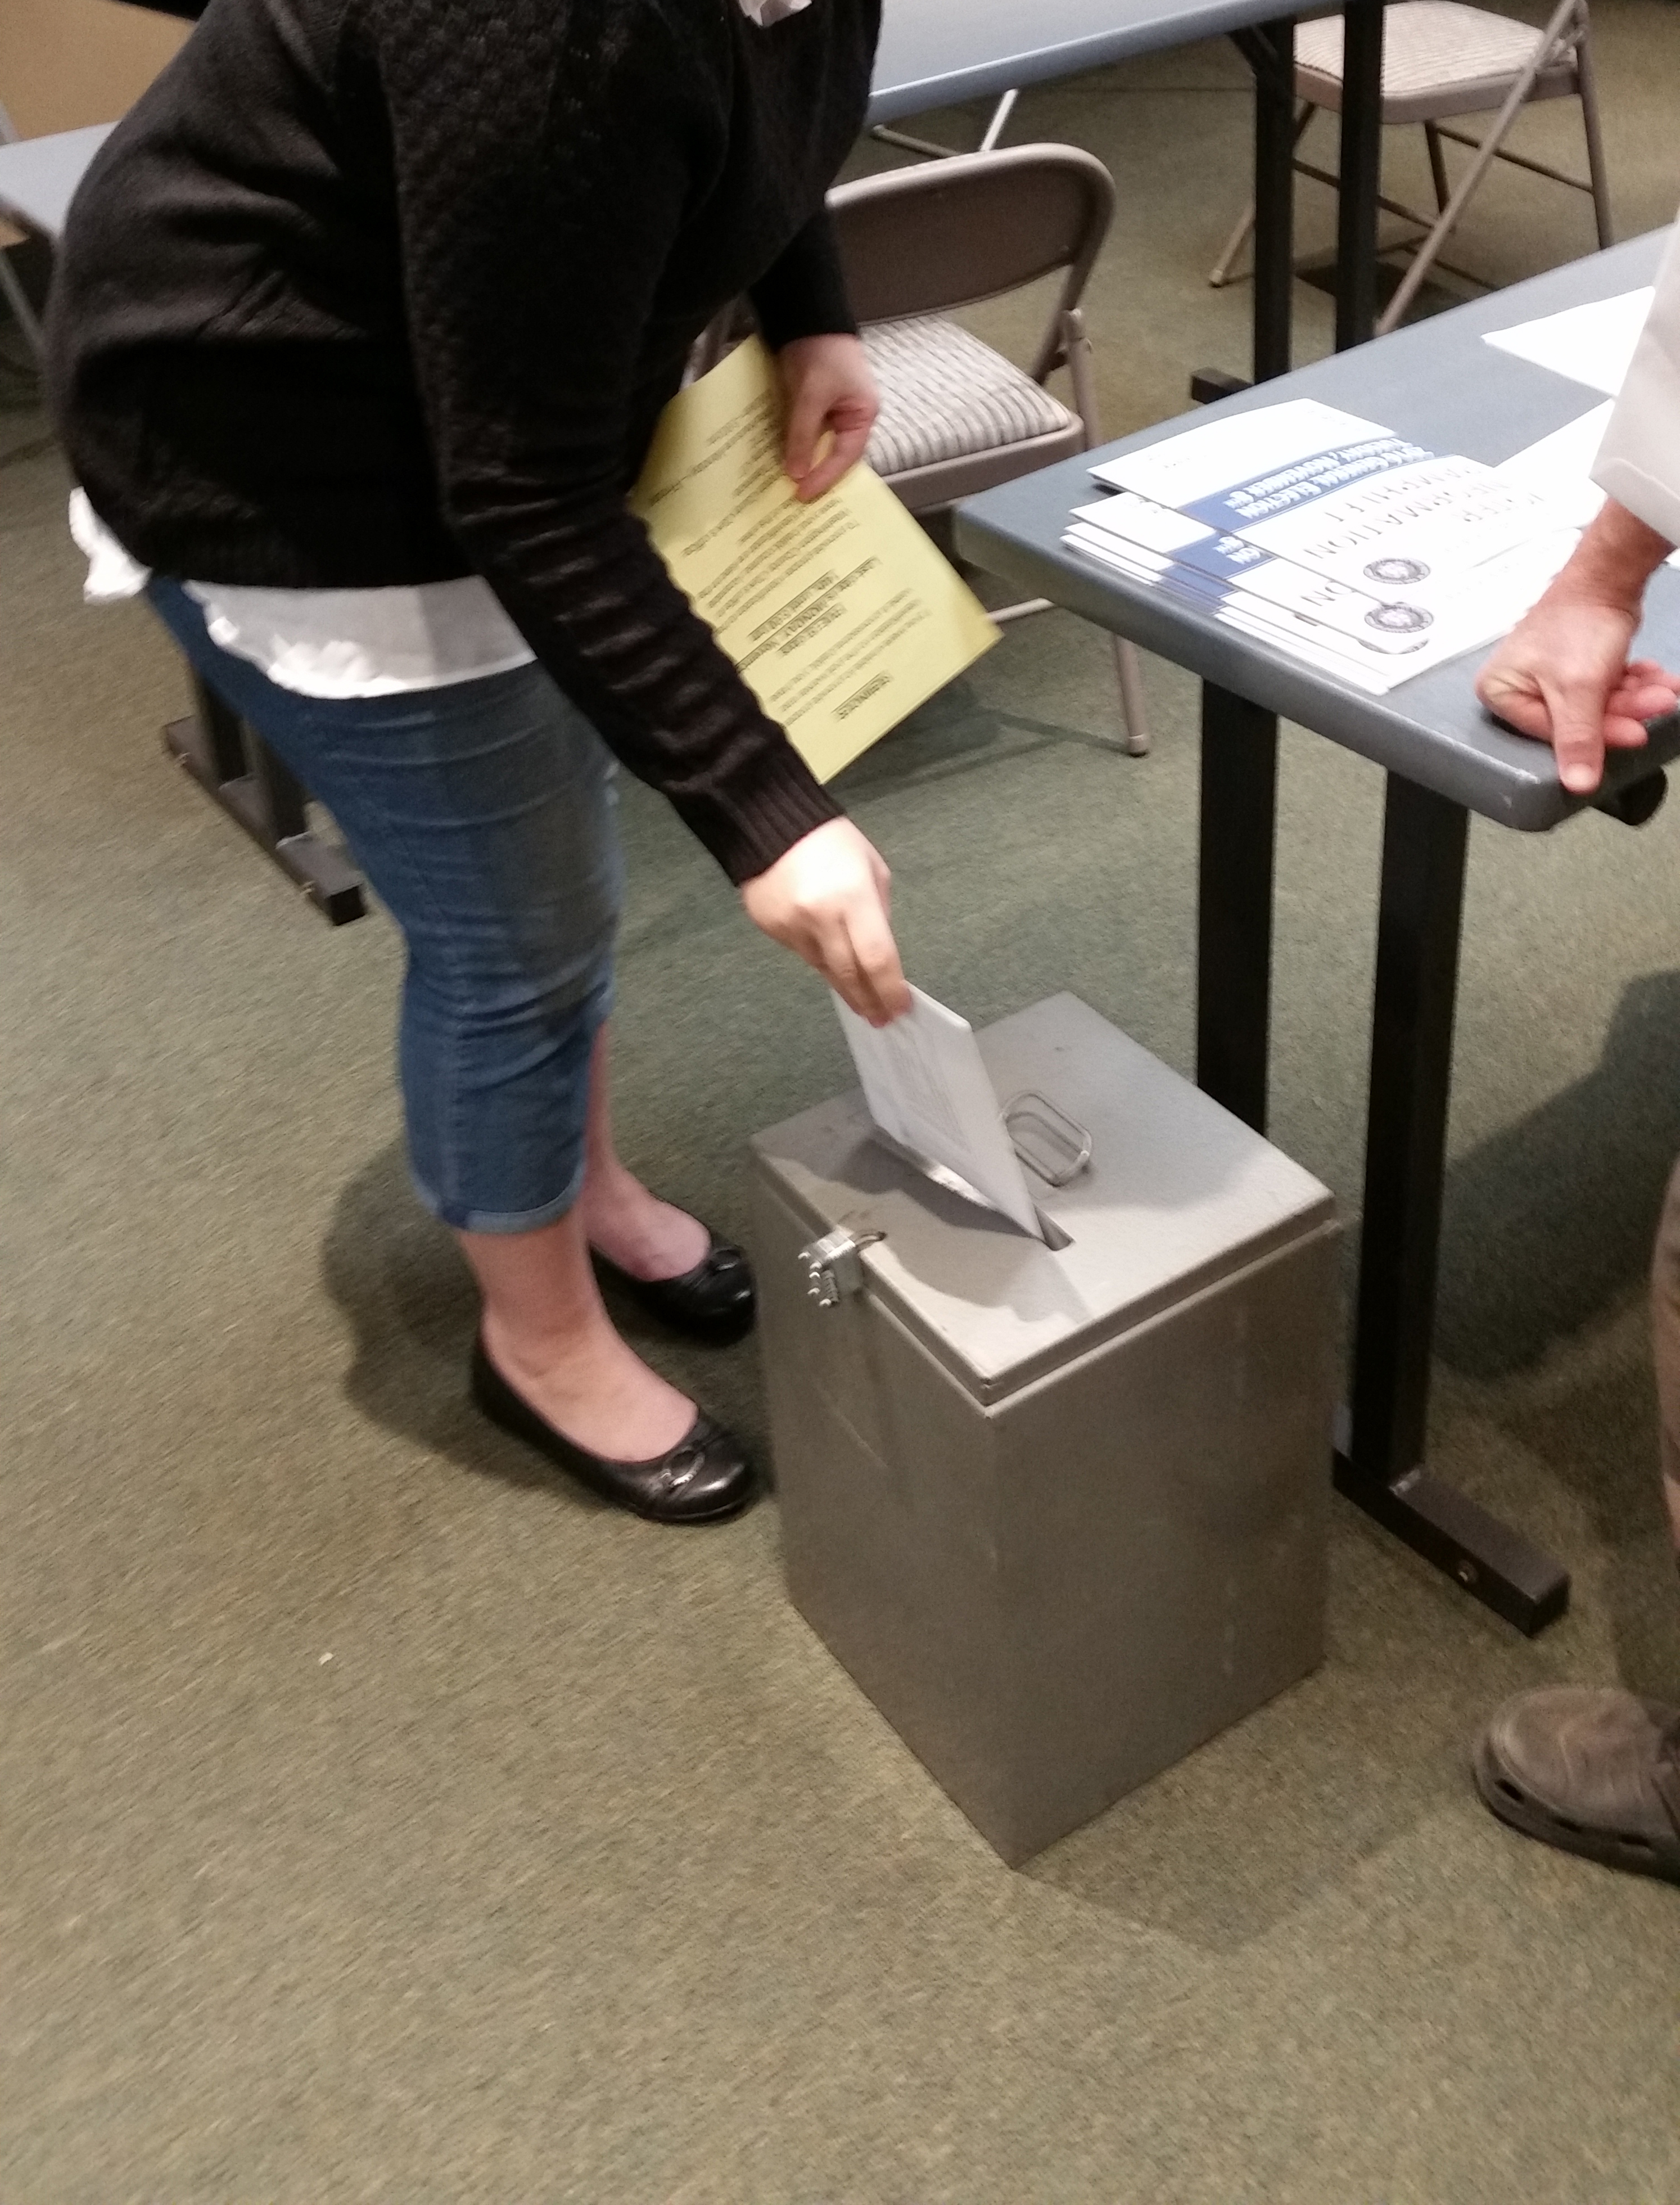 A voter deposits her paper ballot in a locked ballot box at the polling location in the Park Services Building in St. George during the 8 a.m. hour Tuesday. Electronic voting machines were out of order. St. George, Utah, Nov. 8, 2016   Photo by Brett Barrett, St. George News